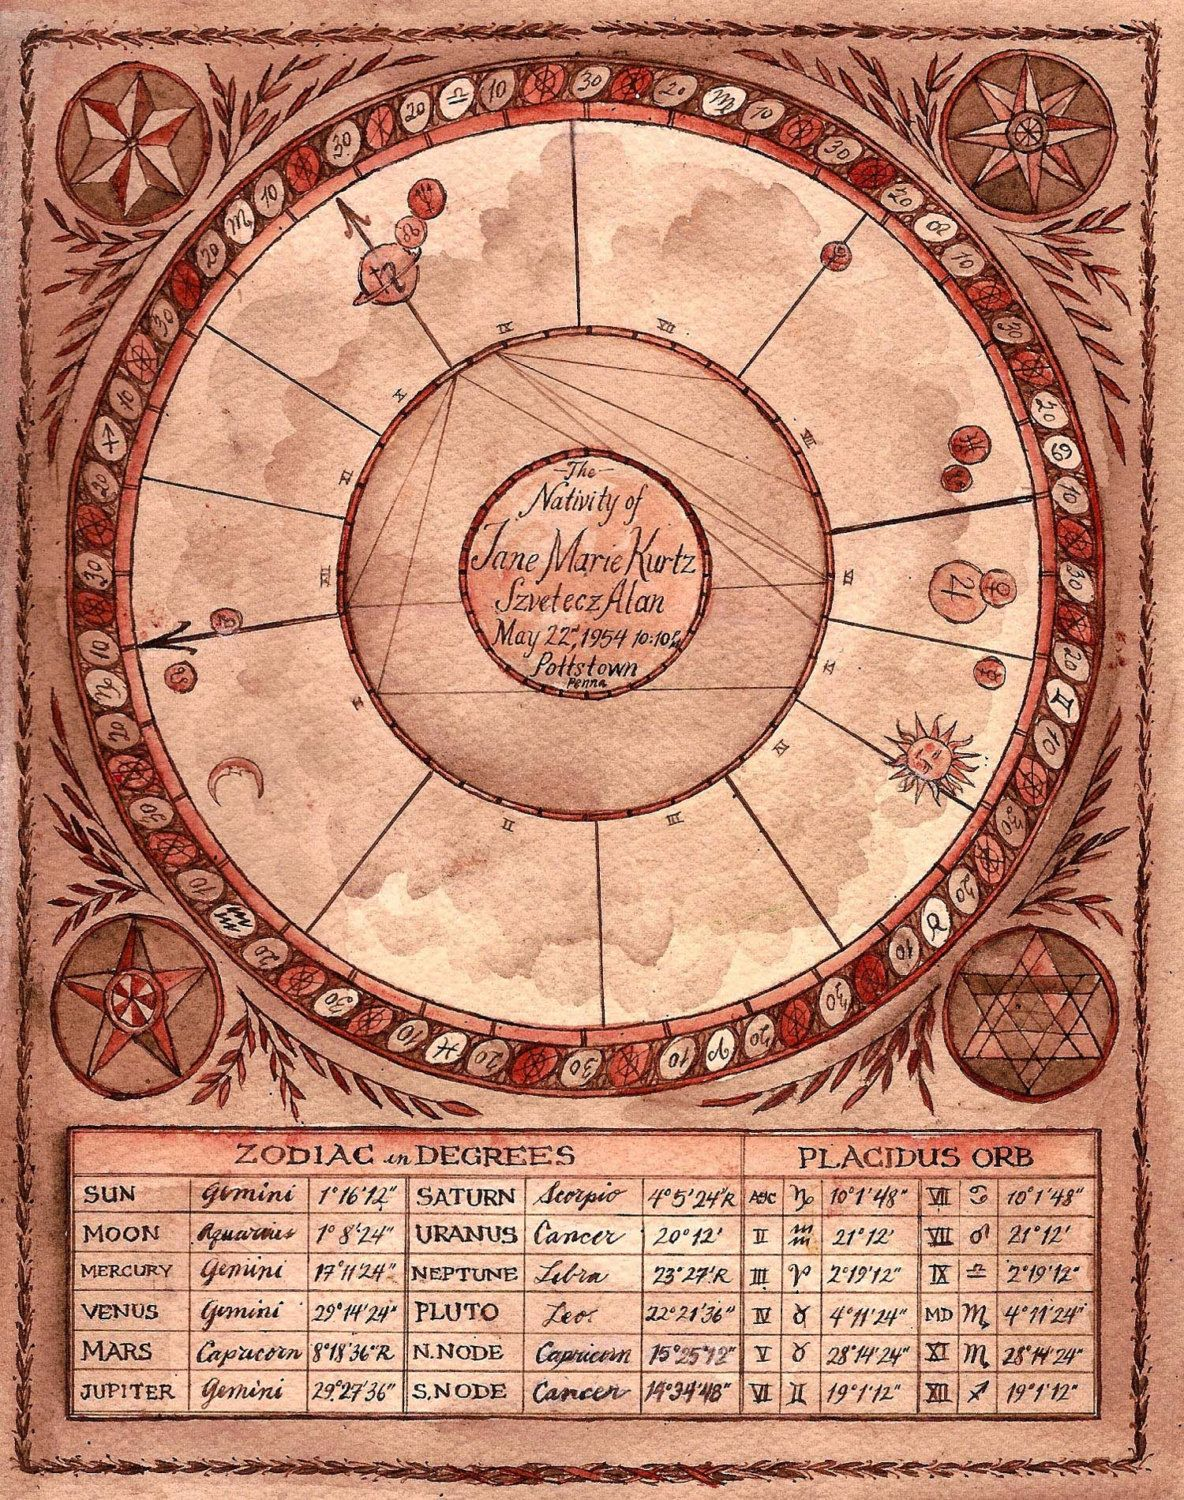 Hand painted astrological chart 2 deposit chart numerology and hand painted astrological chart geenschuldenfo Image collections